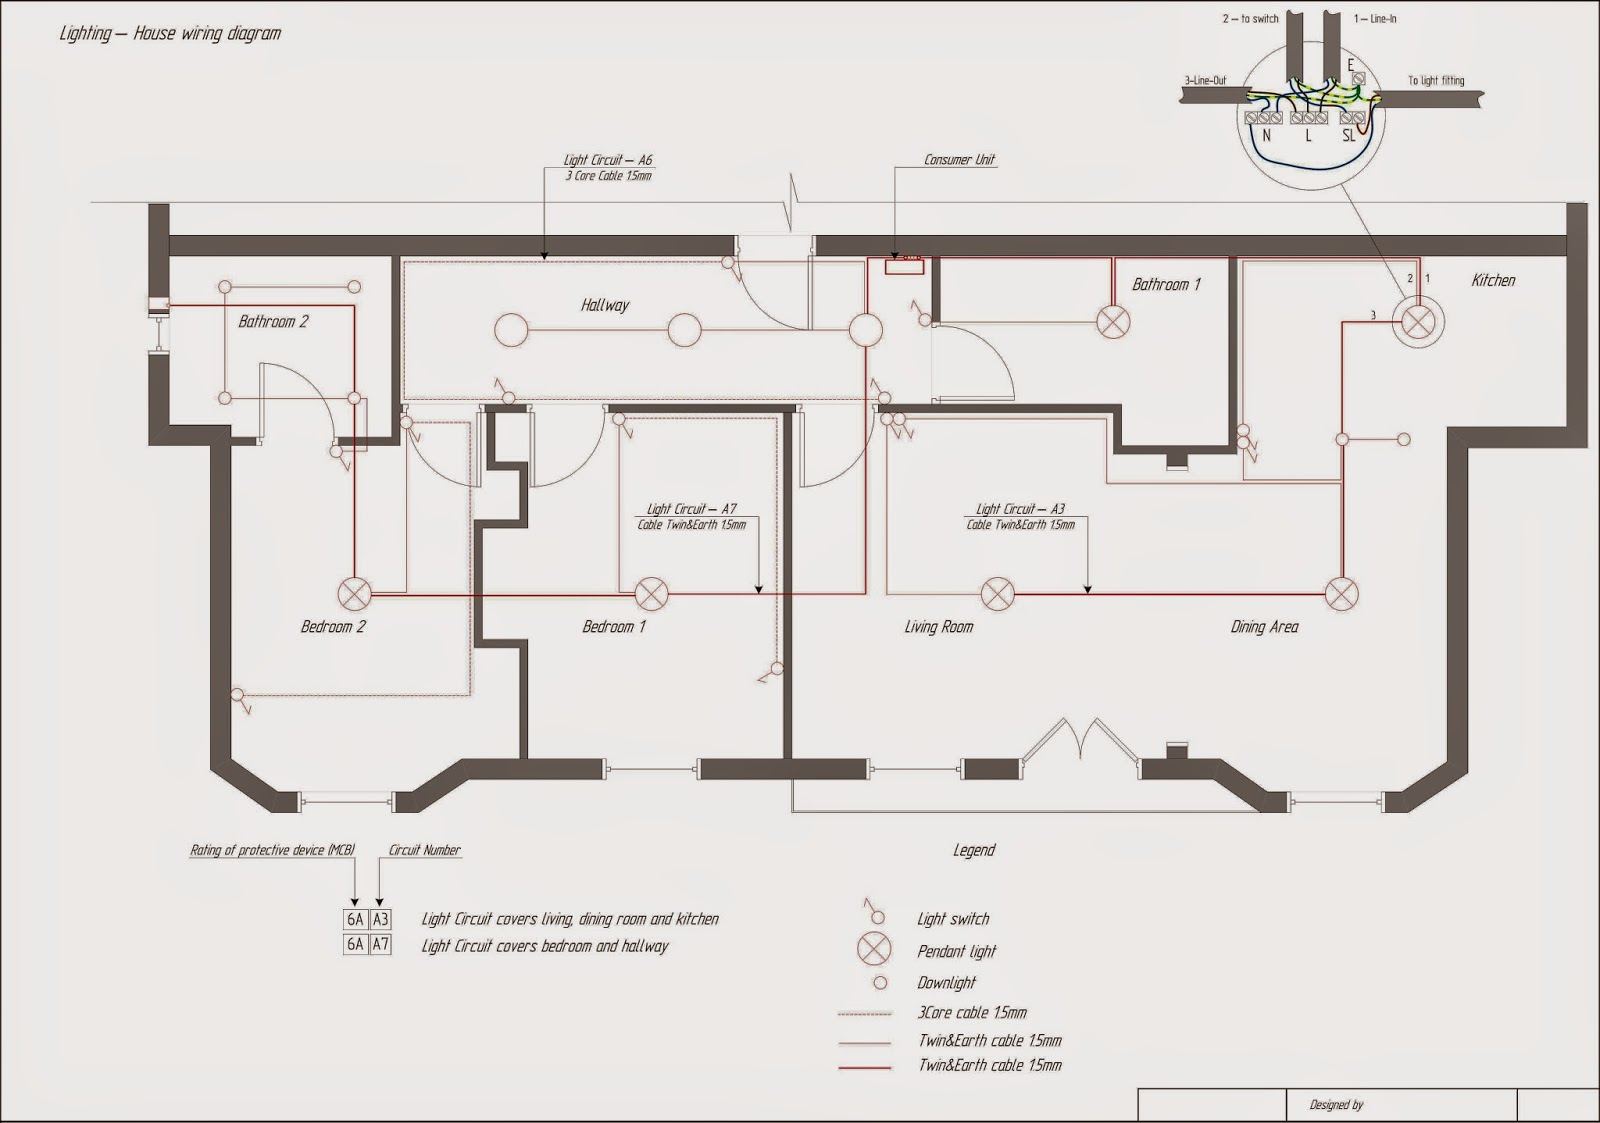 house wiring diagram ex les